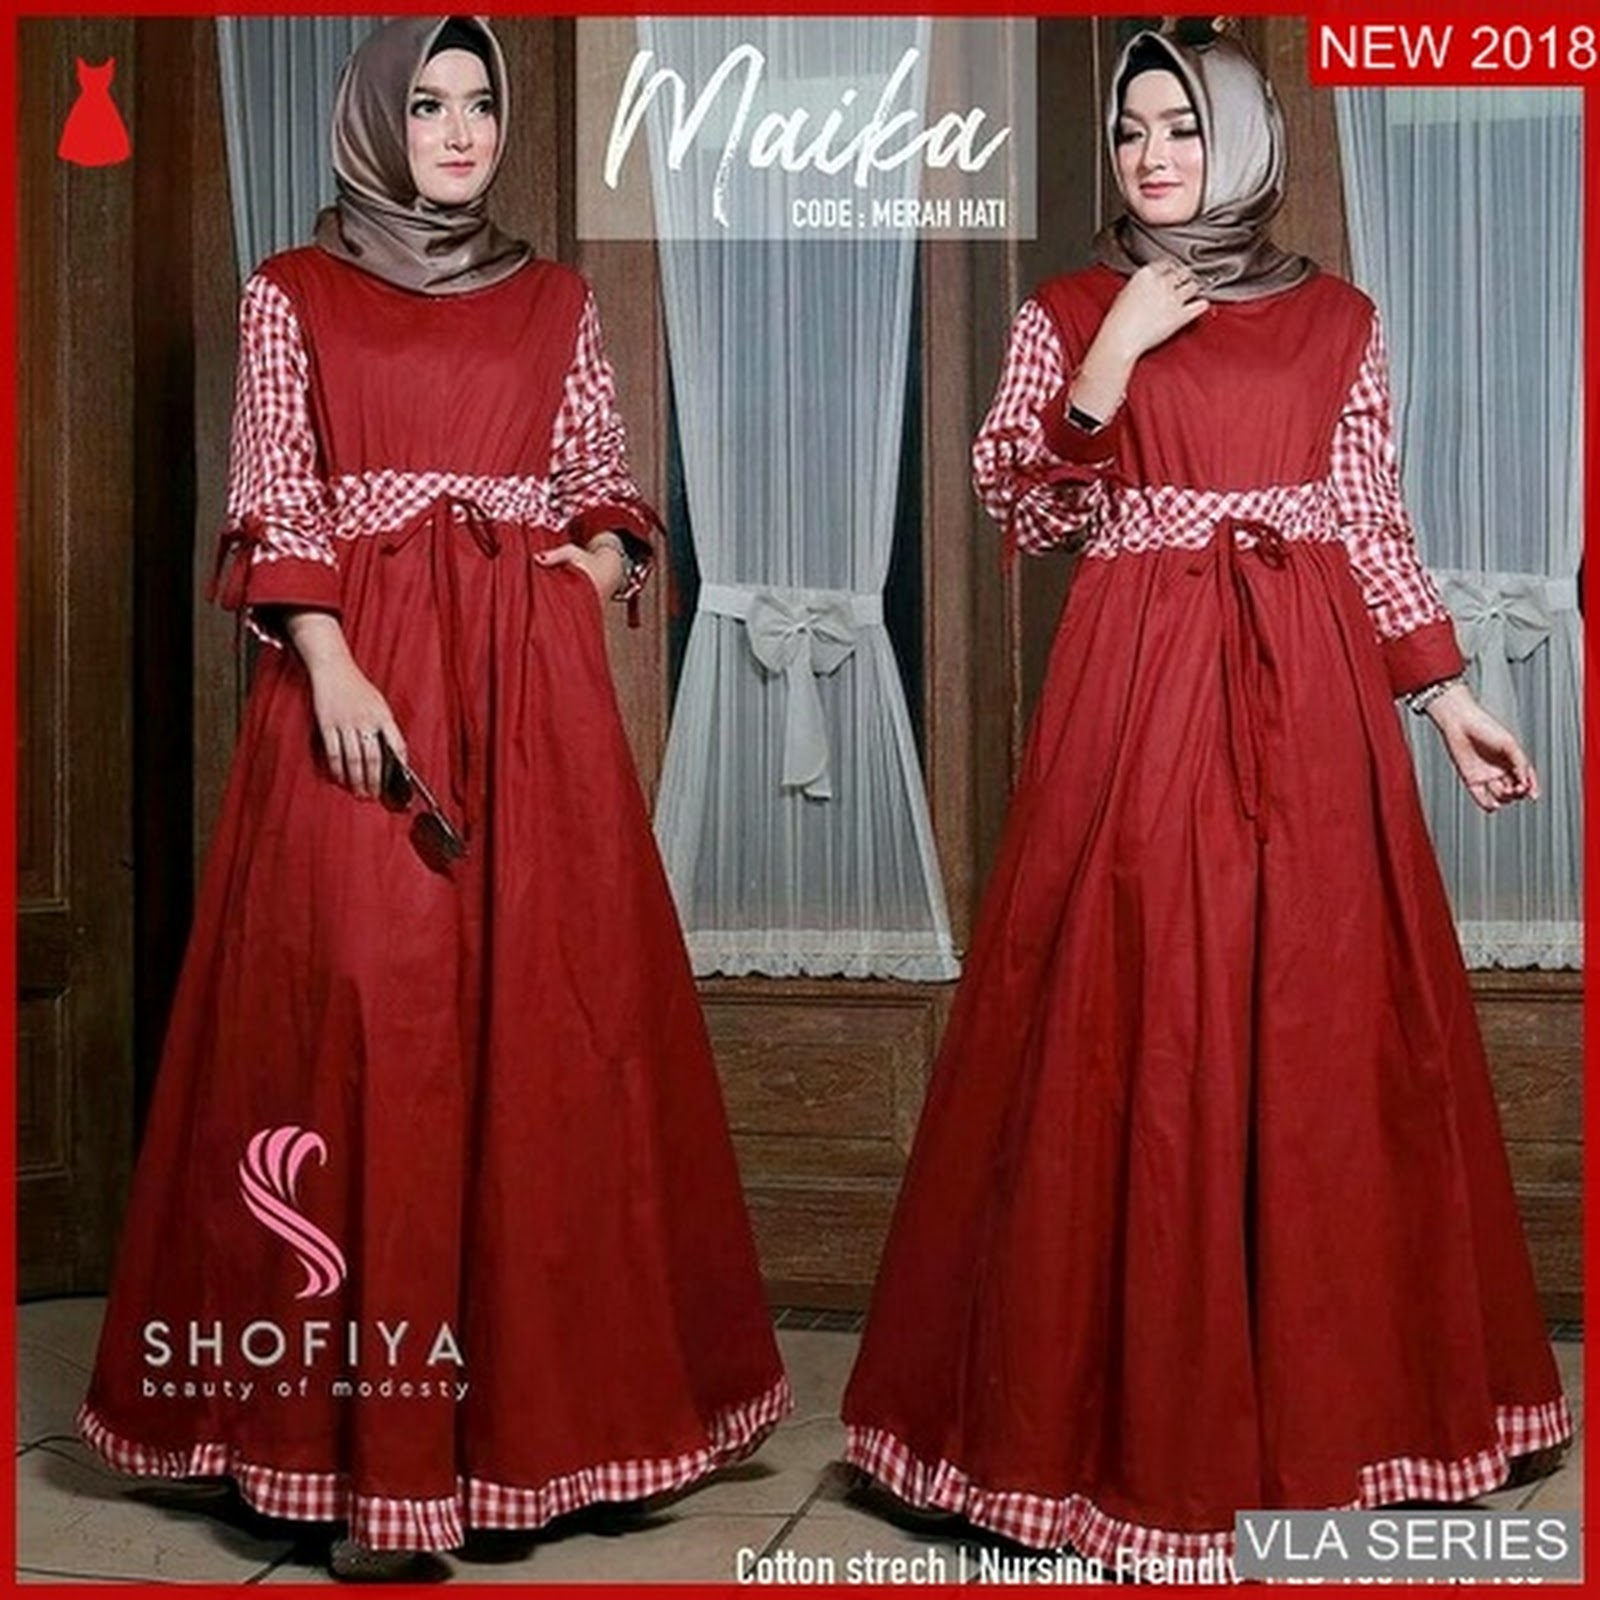 VLA052M187 Model Dress Maika Mc Murah BMGShop a77ccaa8ec